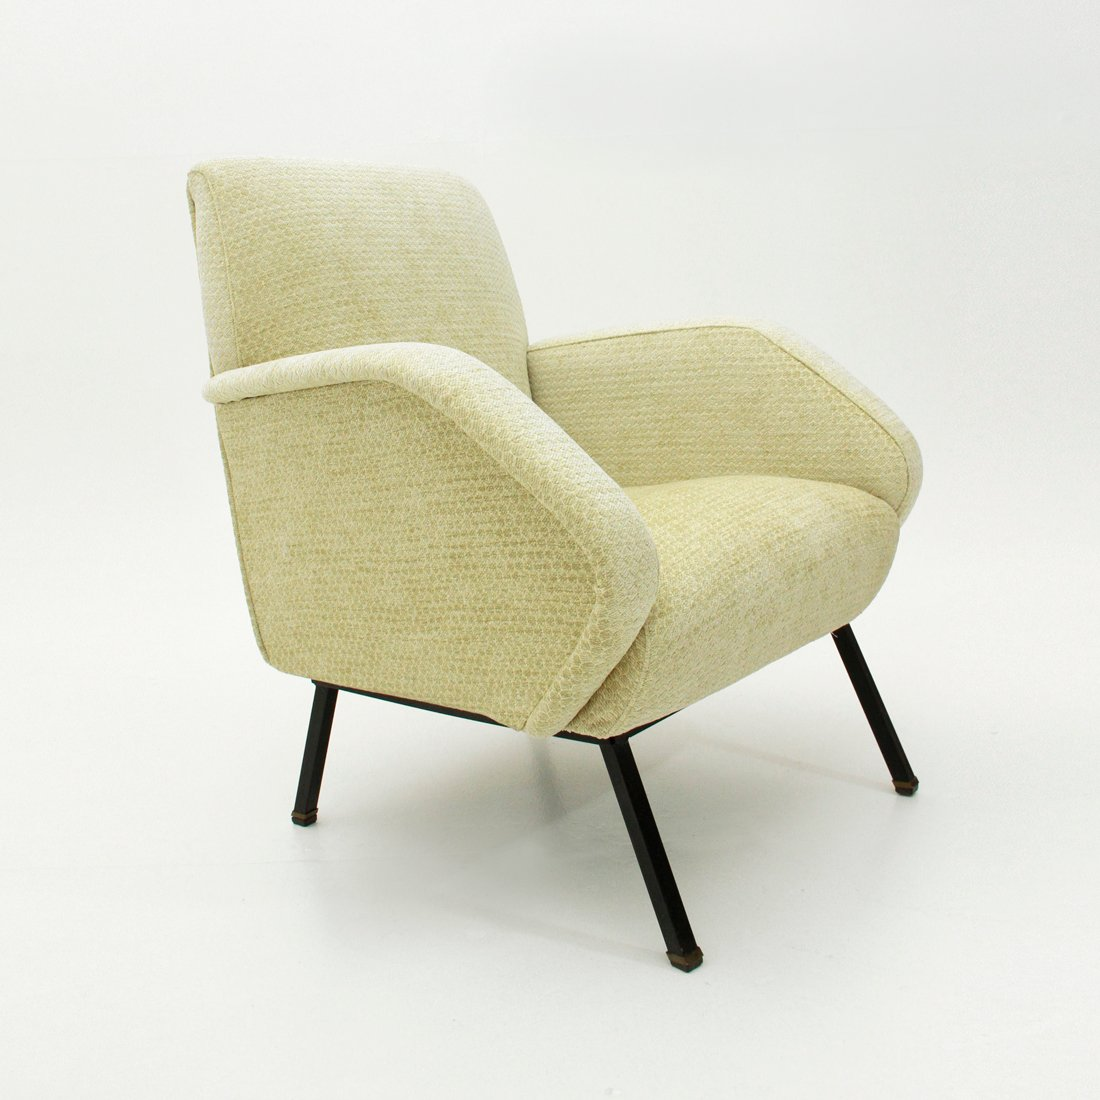 Italian Yellow Armchair From Bonino 1950s